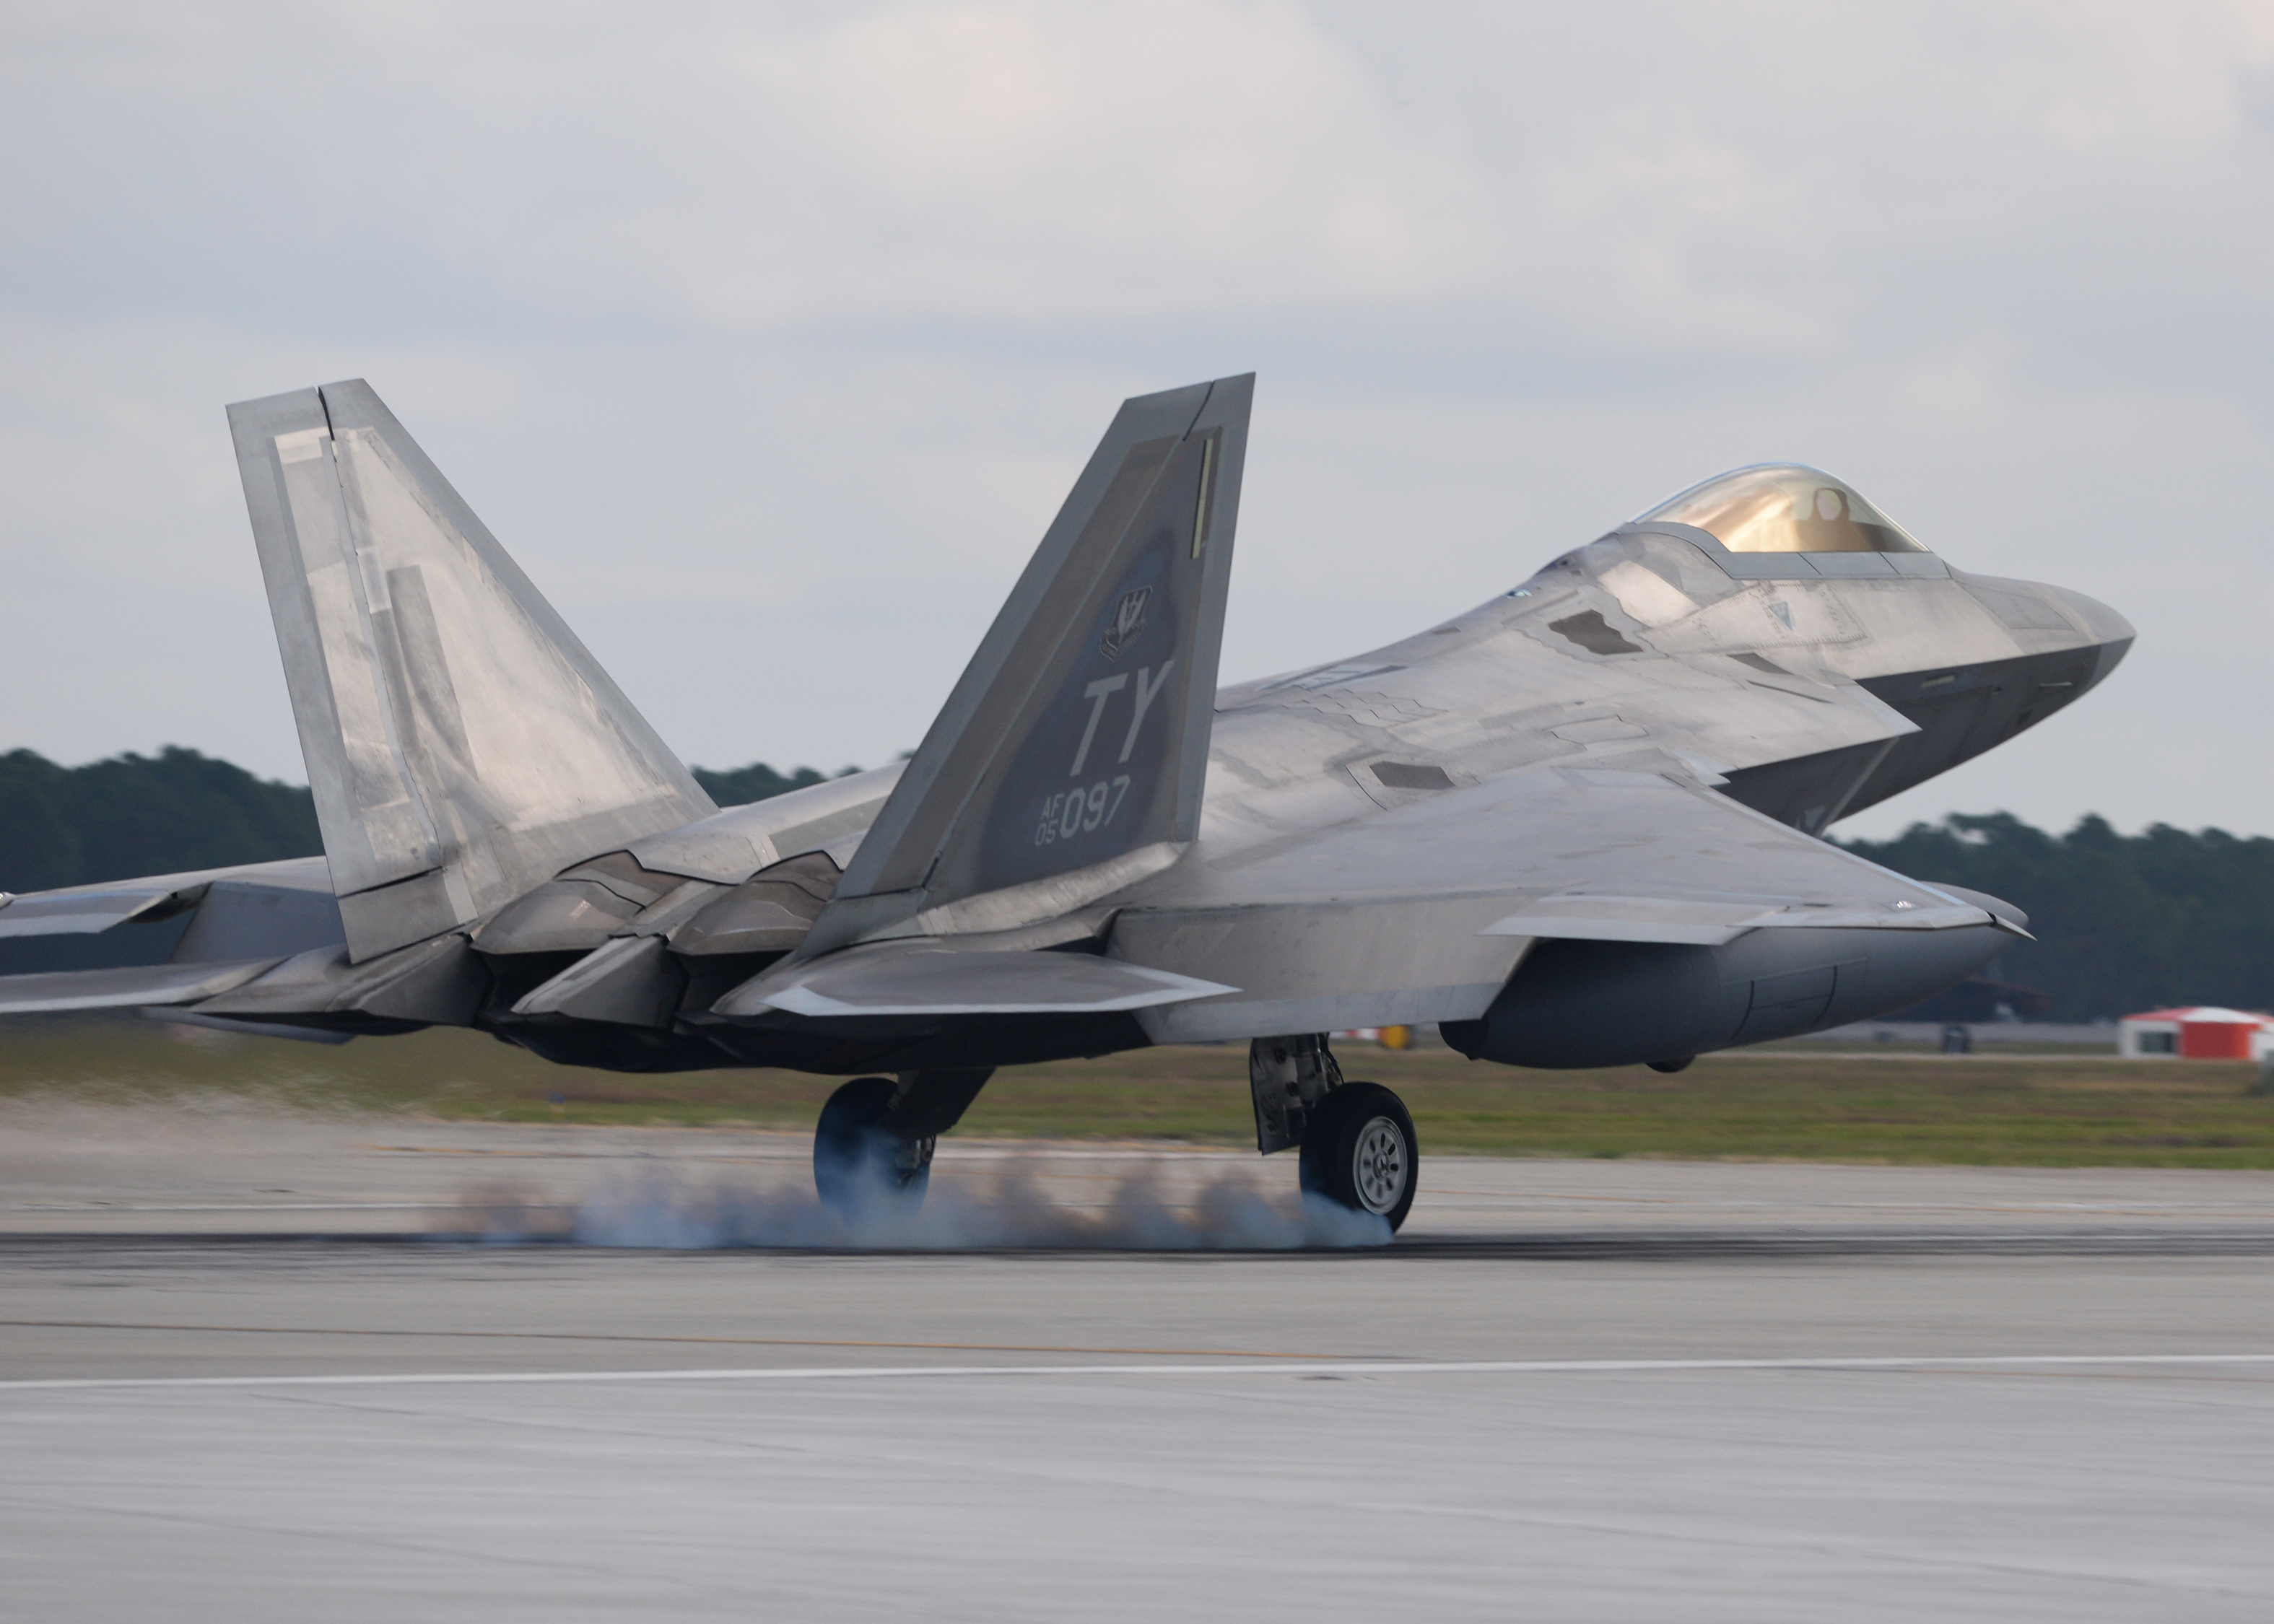 An F-22 Raptor from Tyndall Air Force Base, Fla., touches down Nov. 5 at the Tyndall flightline. The F-22 Raptor's combination of stealth, supercruise, maneuverability and integrated avionics, coupled with improved supportability, represents an exponential leap in warfighting capabilities and allows for the full realization of operational concepts that are vital to the 21st century Air Force. (U.S. Air Force photo by Senior Airman Sergio A. Gamboa/Released)